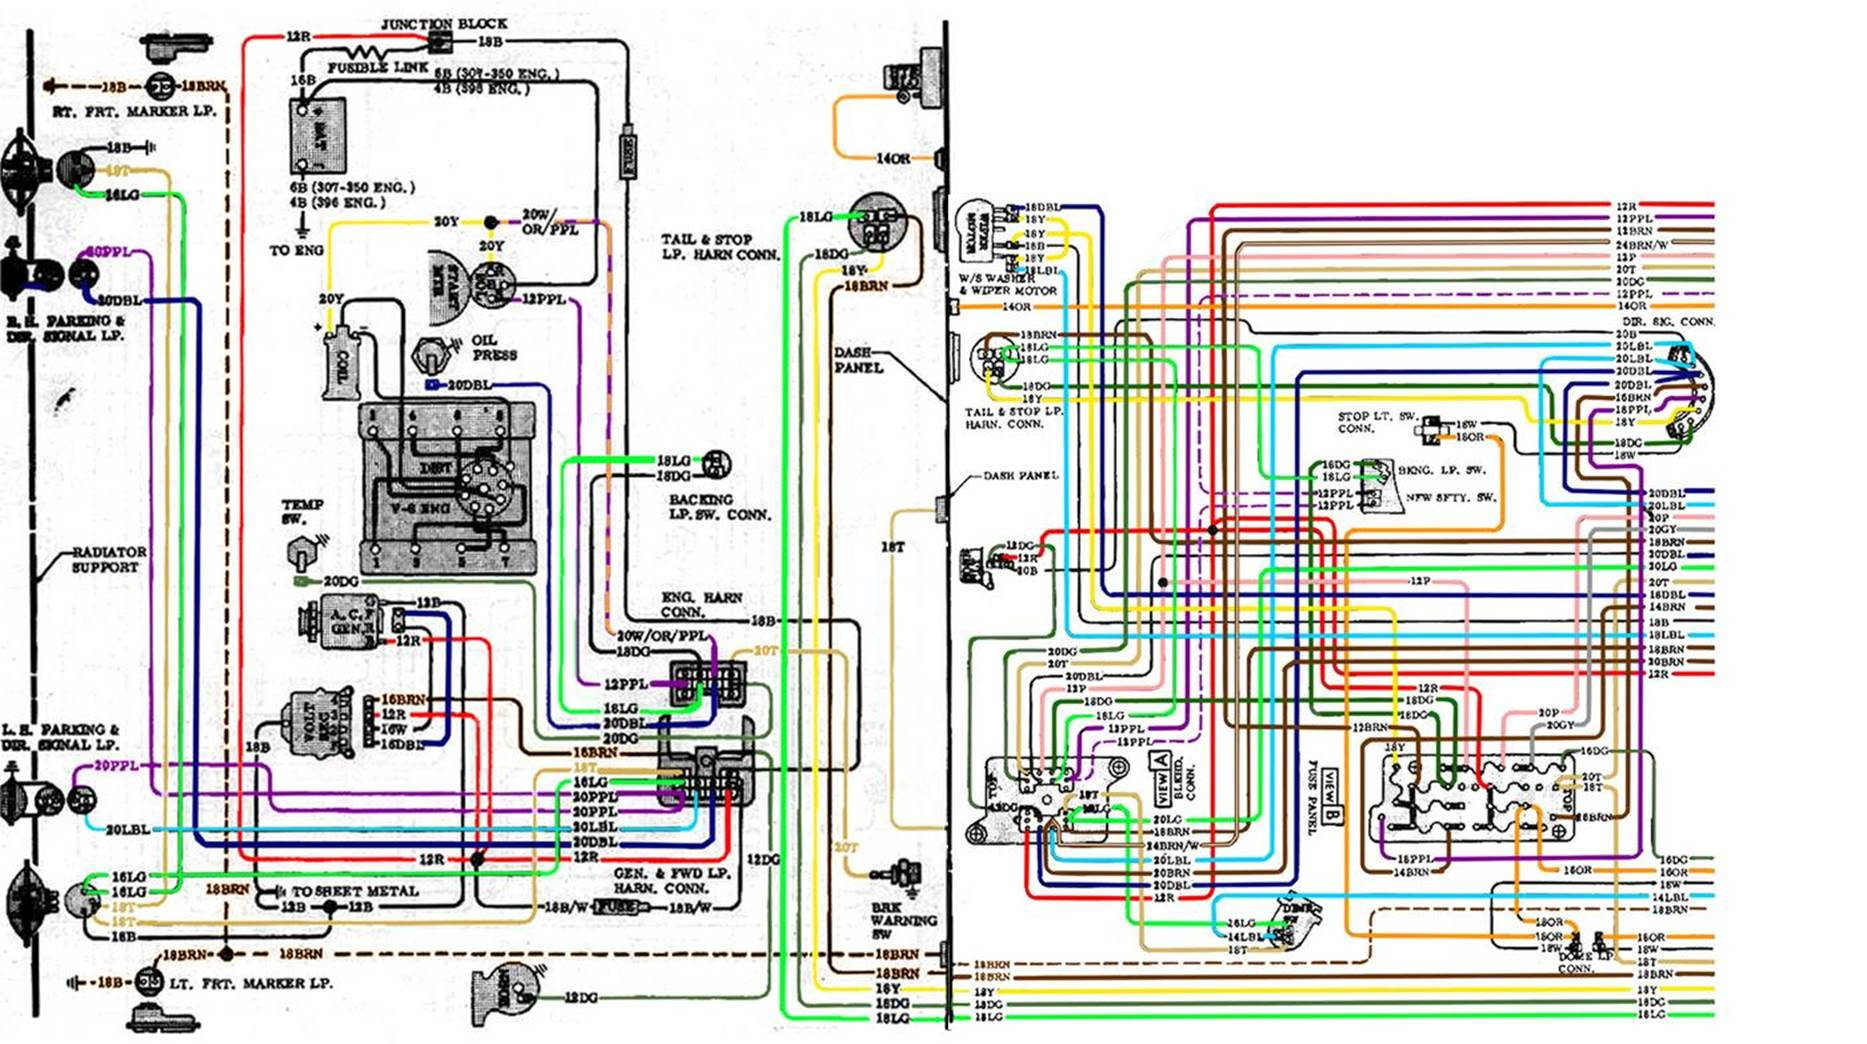 Ka24de Tachometer Wiring Schematic Quick Start Guide Of 83 Mustang Engine Harness 67 72 Chevy Diagram Electronic Sun